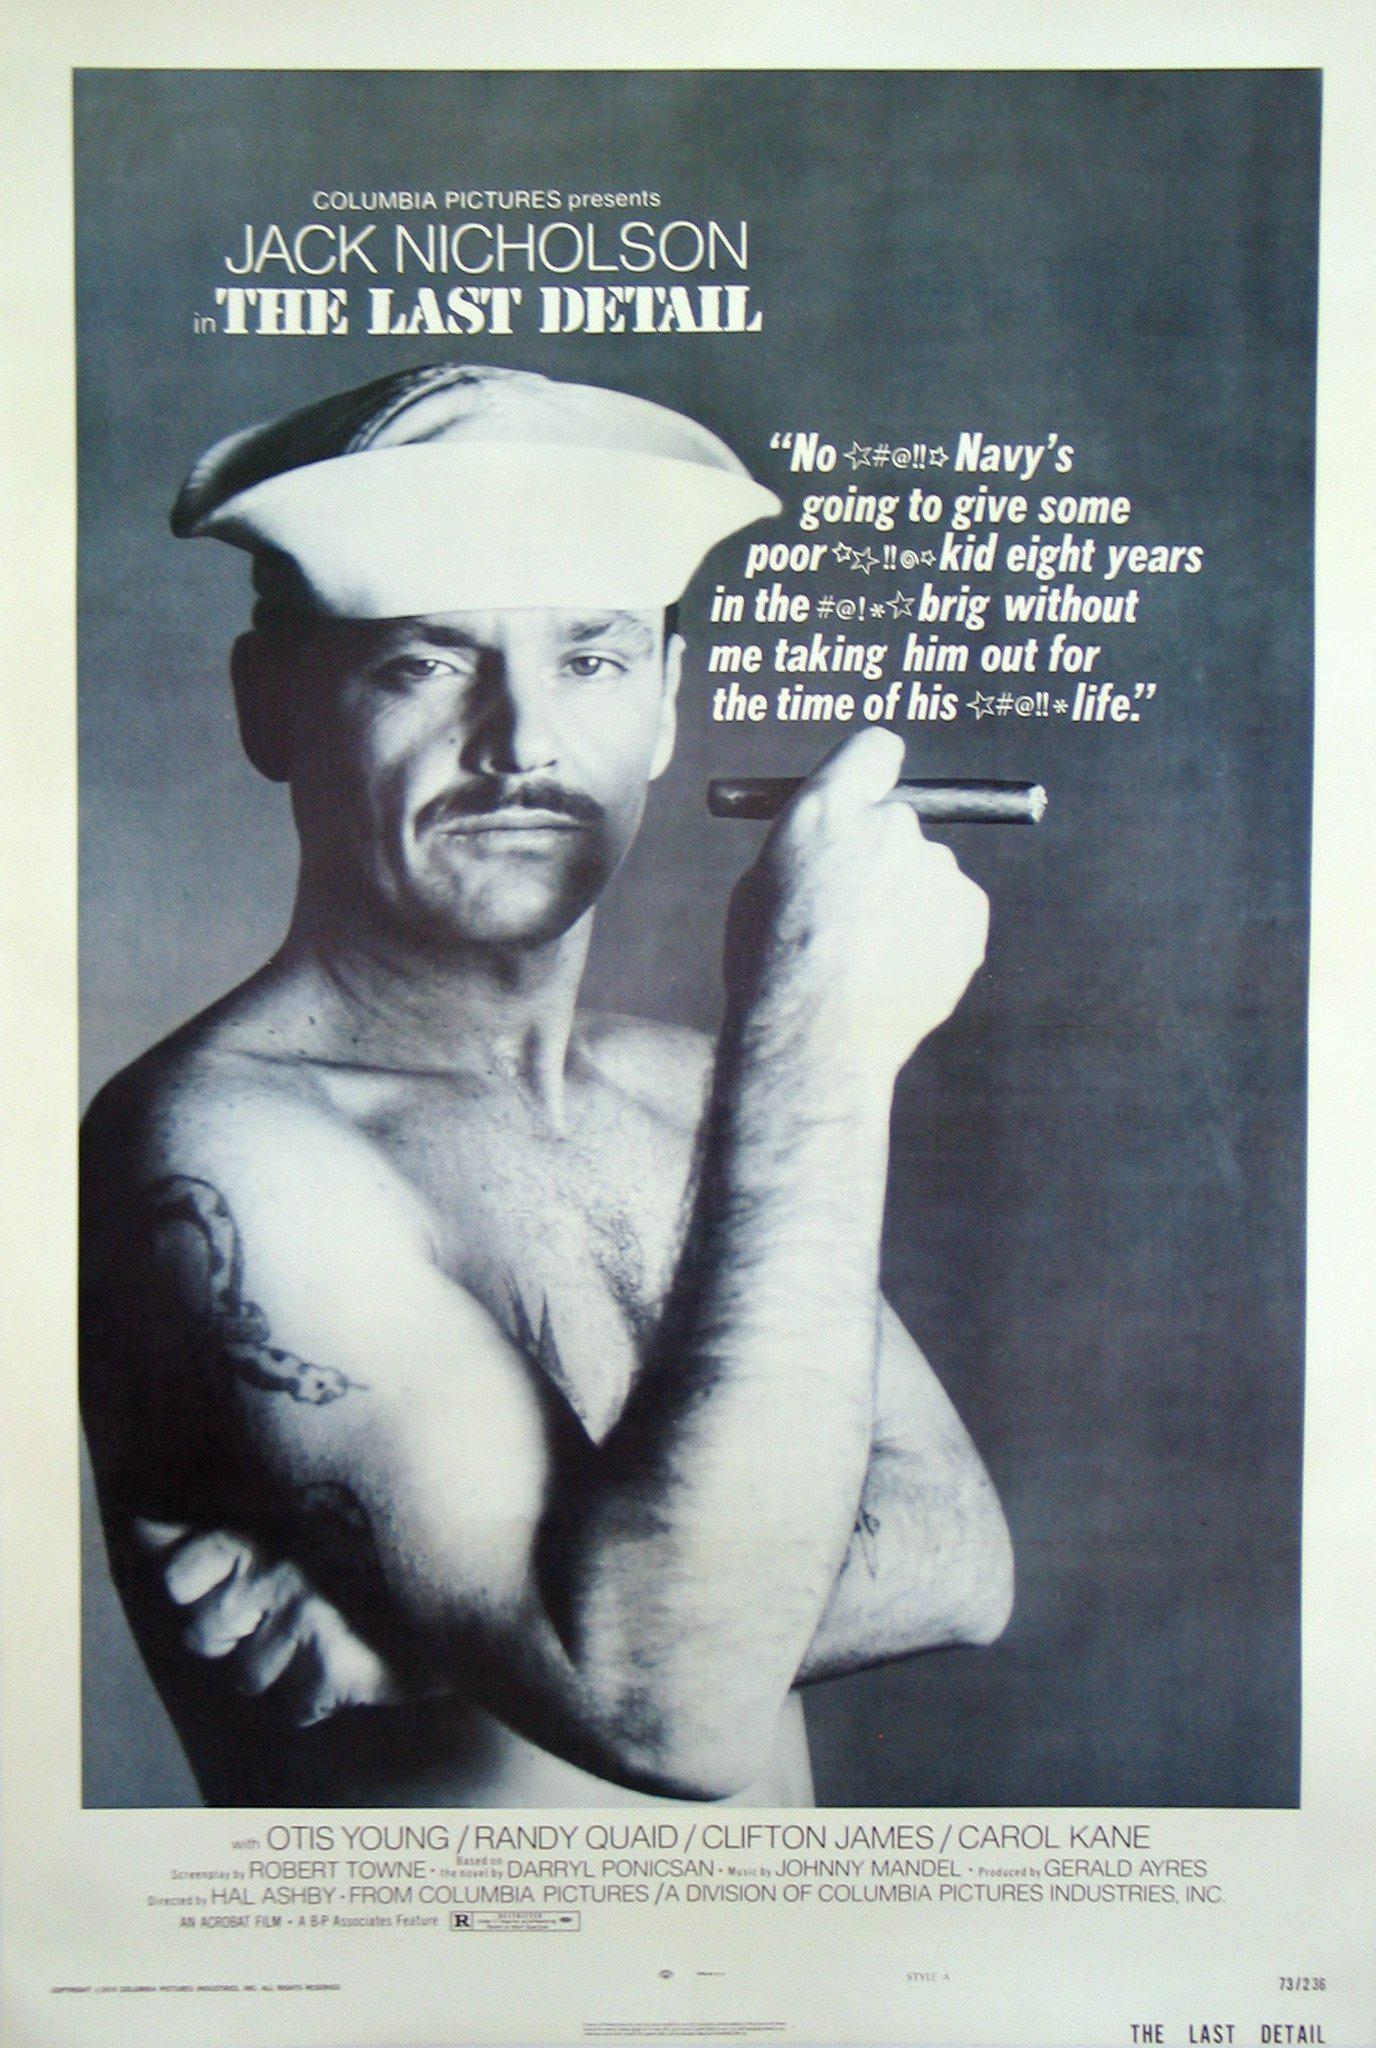 The Last Detail 1 Sheet (27x41) Original Vintage Movie Poster